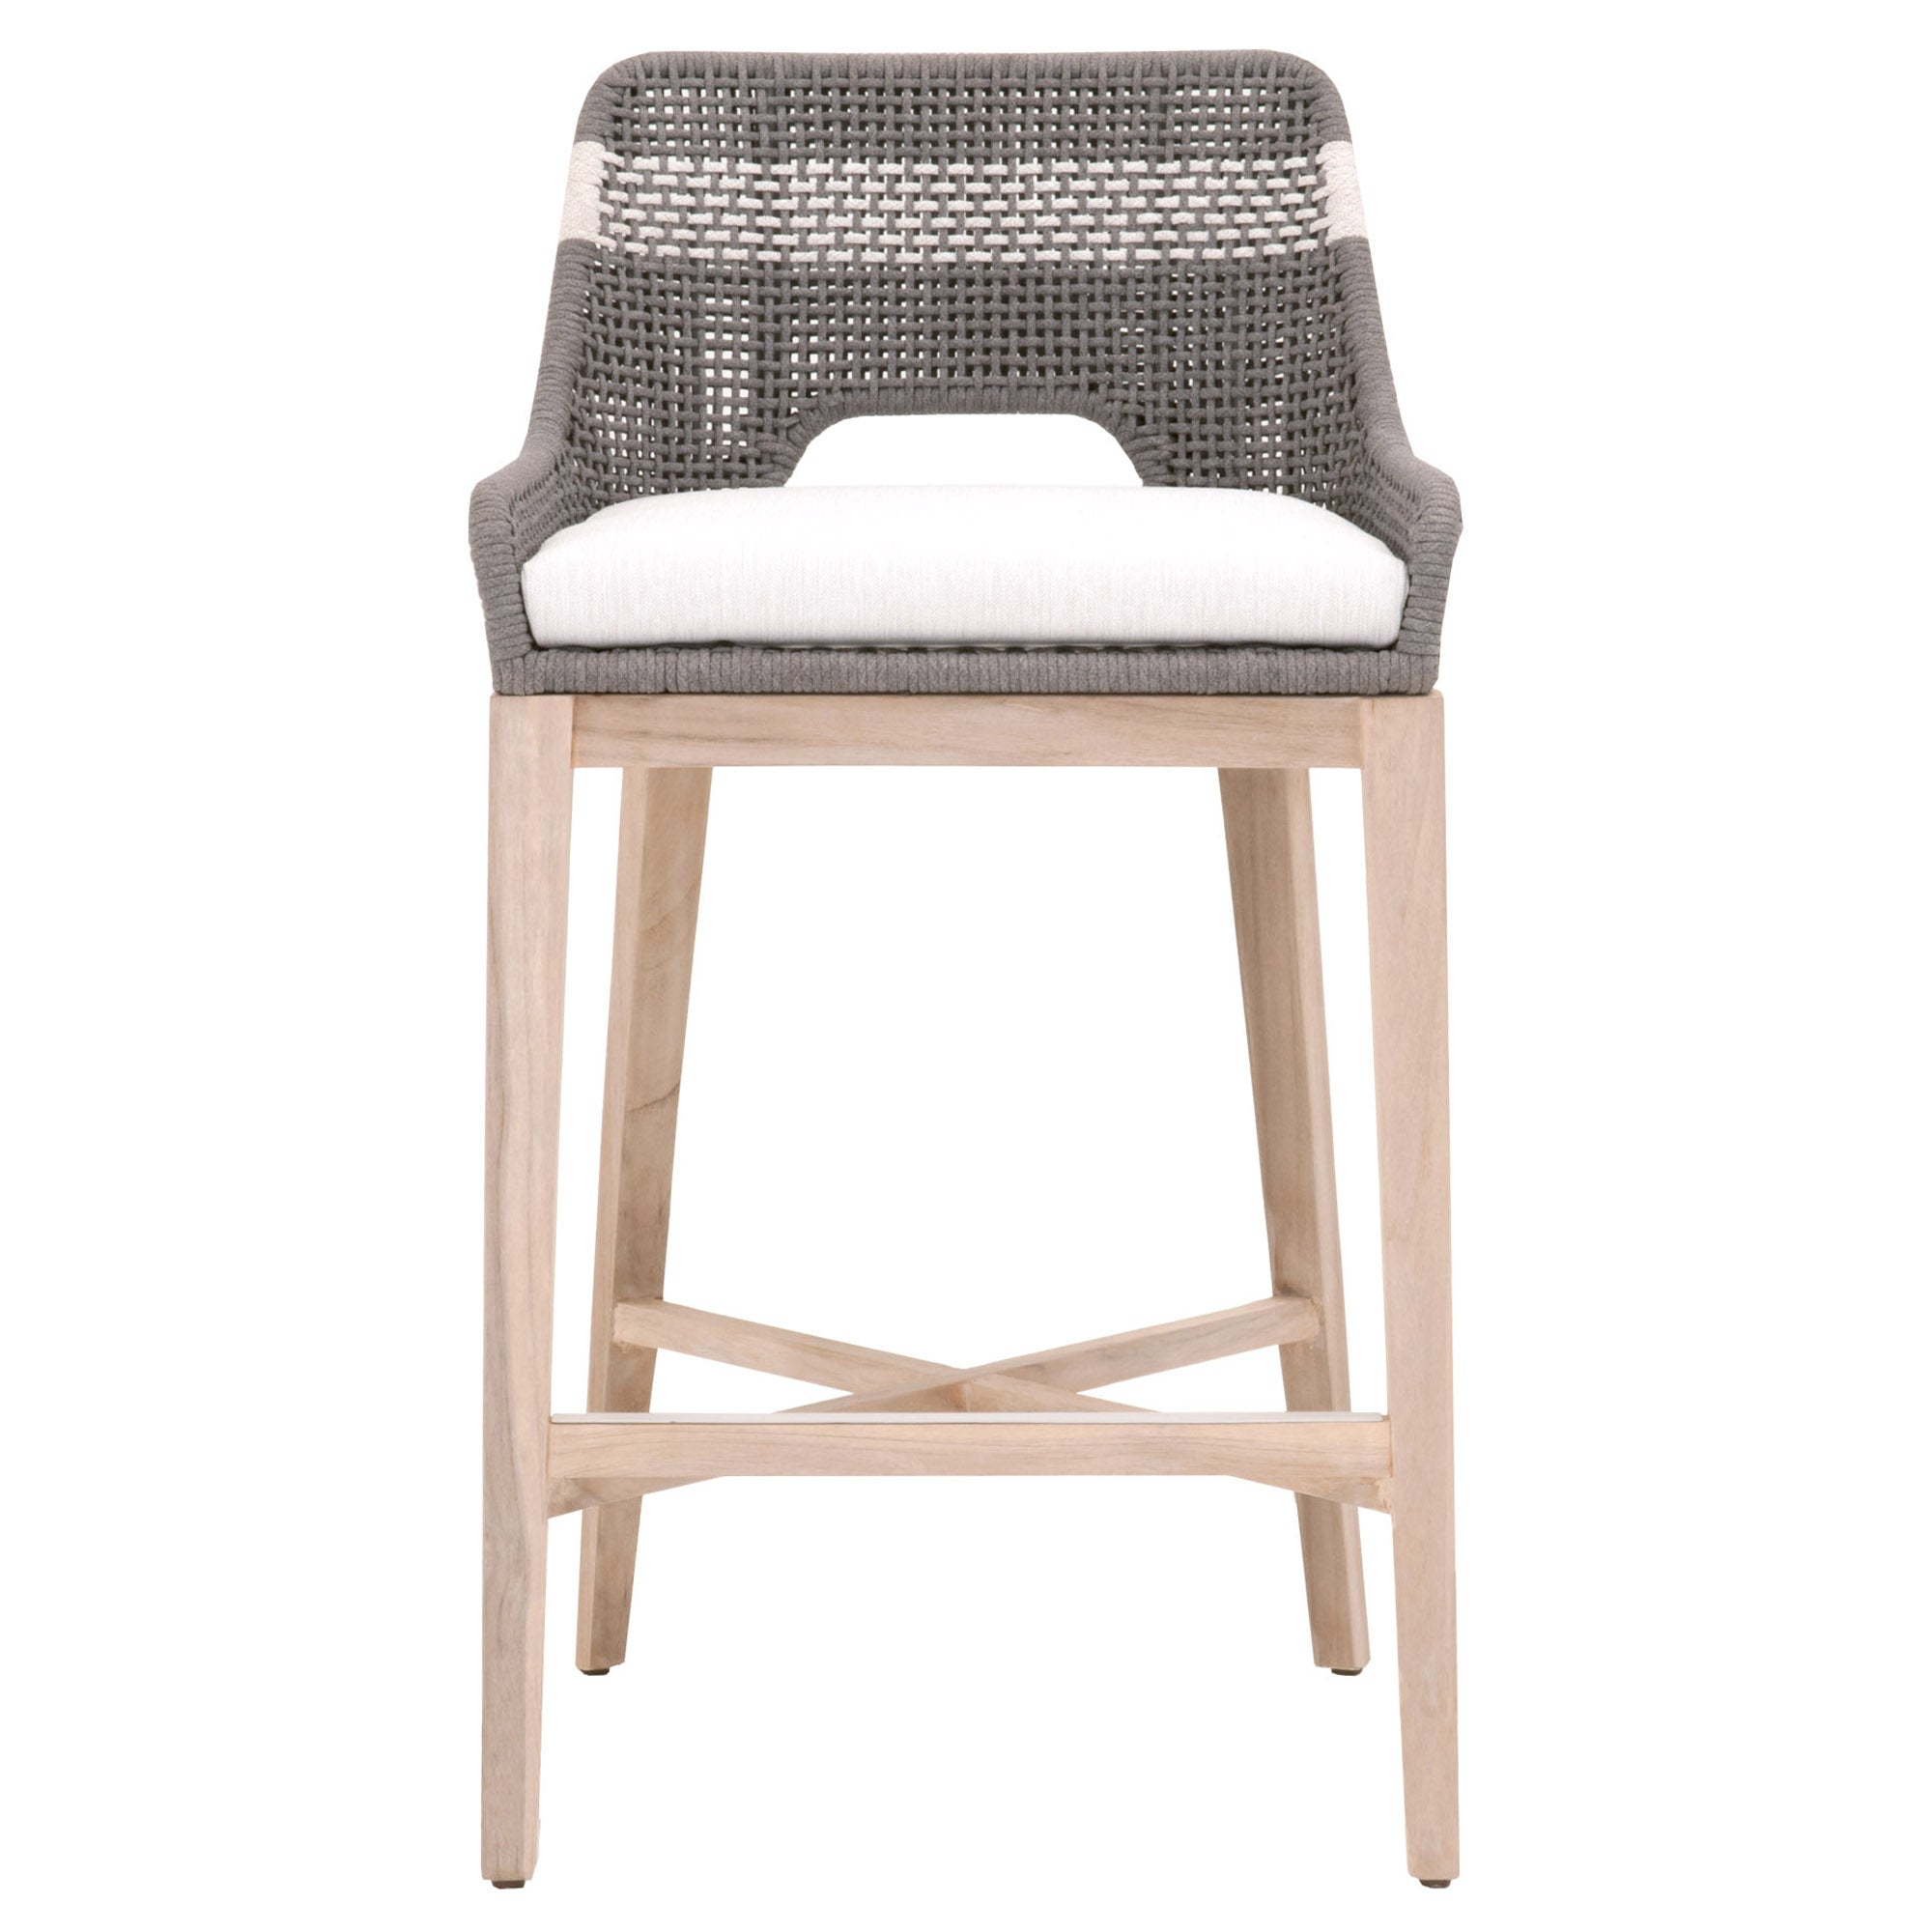 Essentials for Living-Tapestry Outdoor Barstool-Outdoor Barstools-MODTEMPO